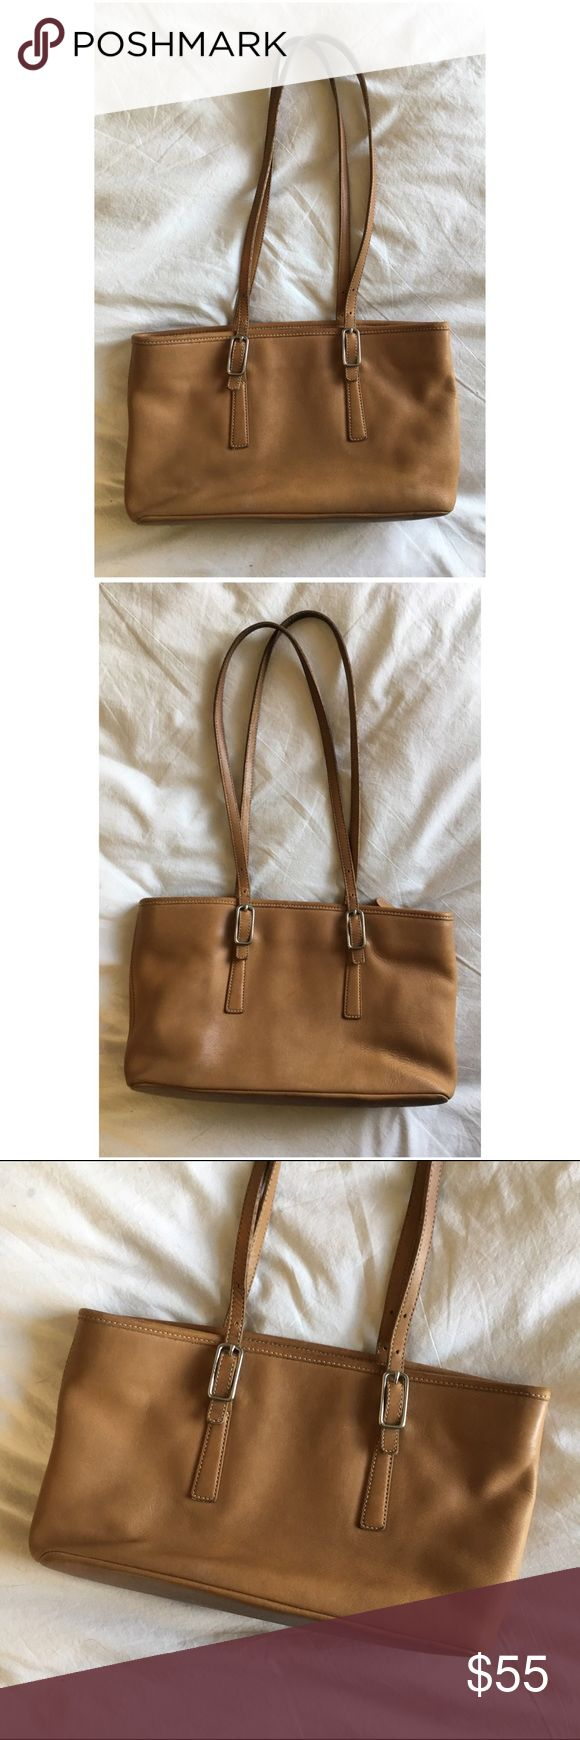 "Vintage tan coach-- newly conditioned! This is a lovely vintage coach bag in great condition. This bag is from the late 90s, early 2000s. The leather is soft, supple and newly conditioned! There is some wear since it is an older piece, but it has no major stains, tears, scratches, etc. It is, however, missing its hang tag. The tops of the handles are slightly darker as they have patinaed somewhat over time. Strap drop: 12.5"", height: 7.5"", length: 13"", depth: 3.5"". Made in the USA! Coach…"